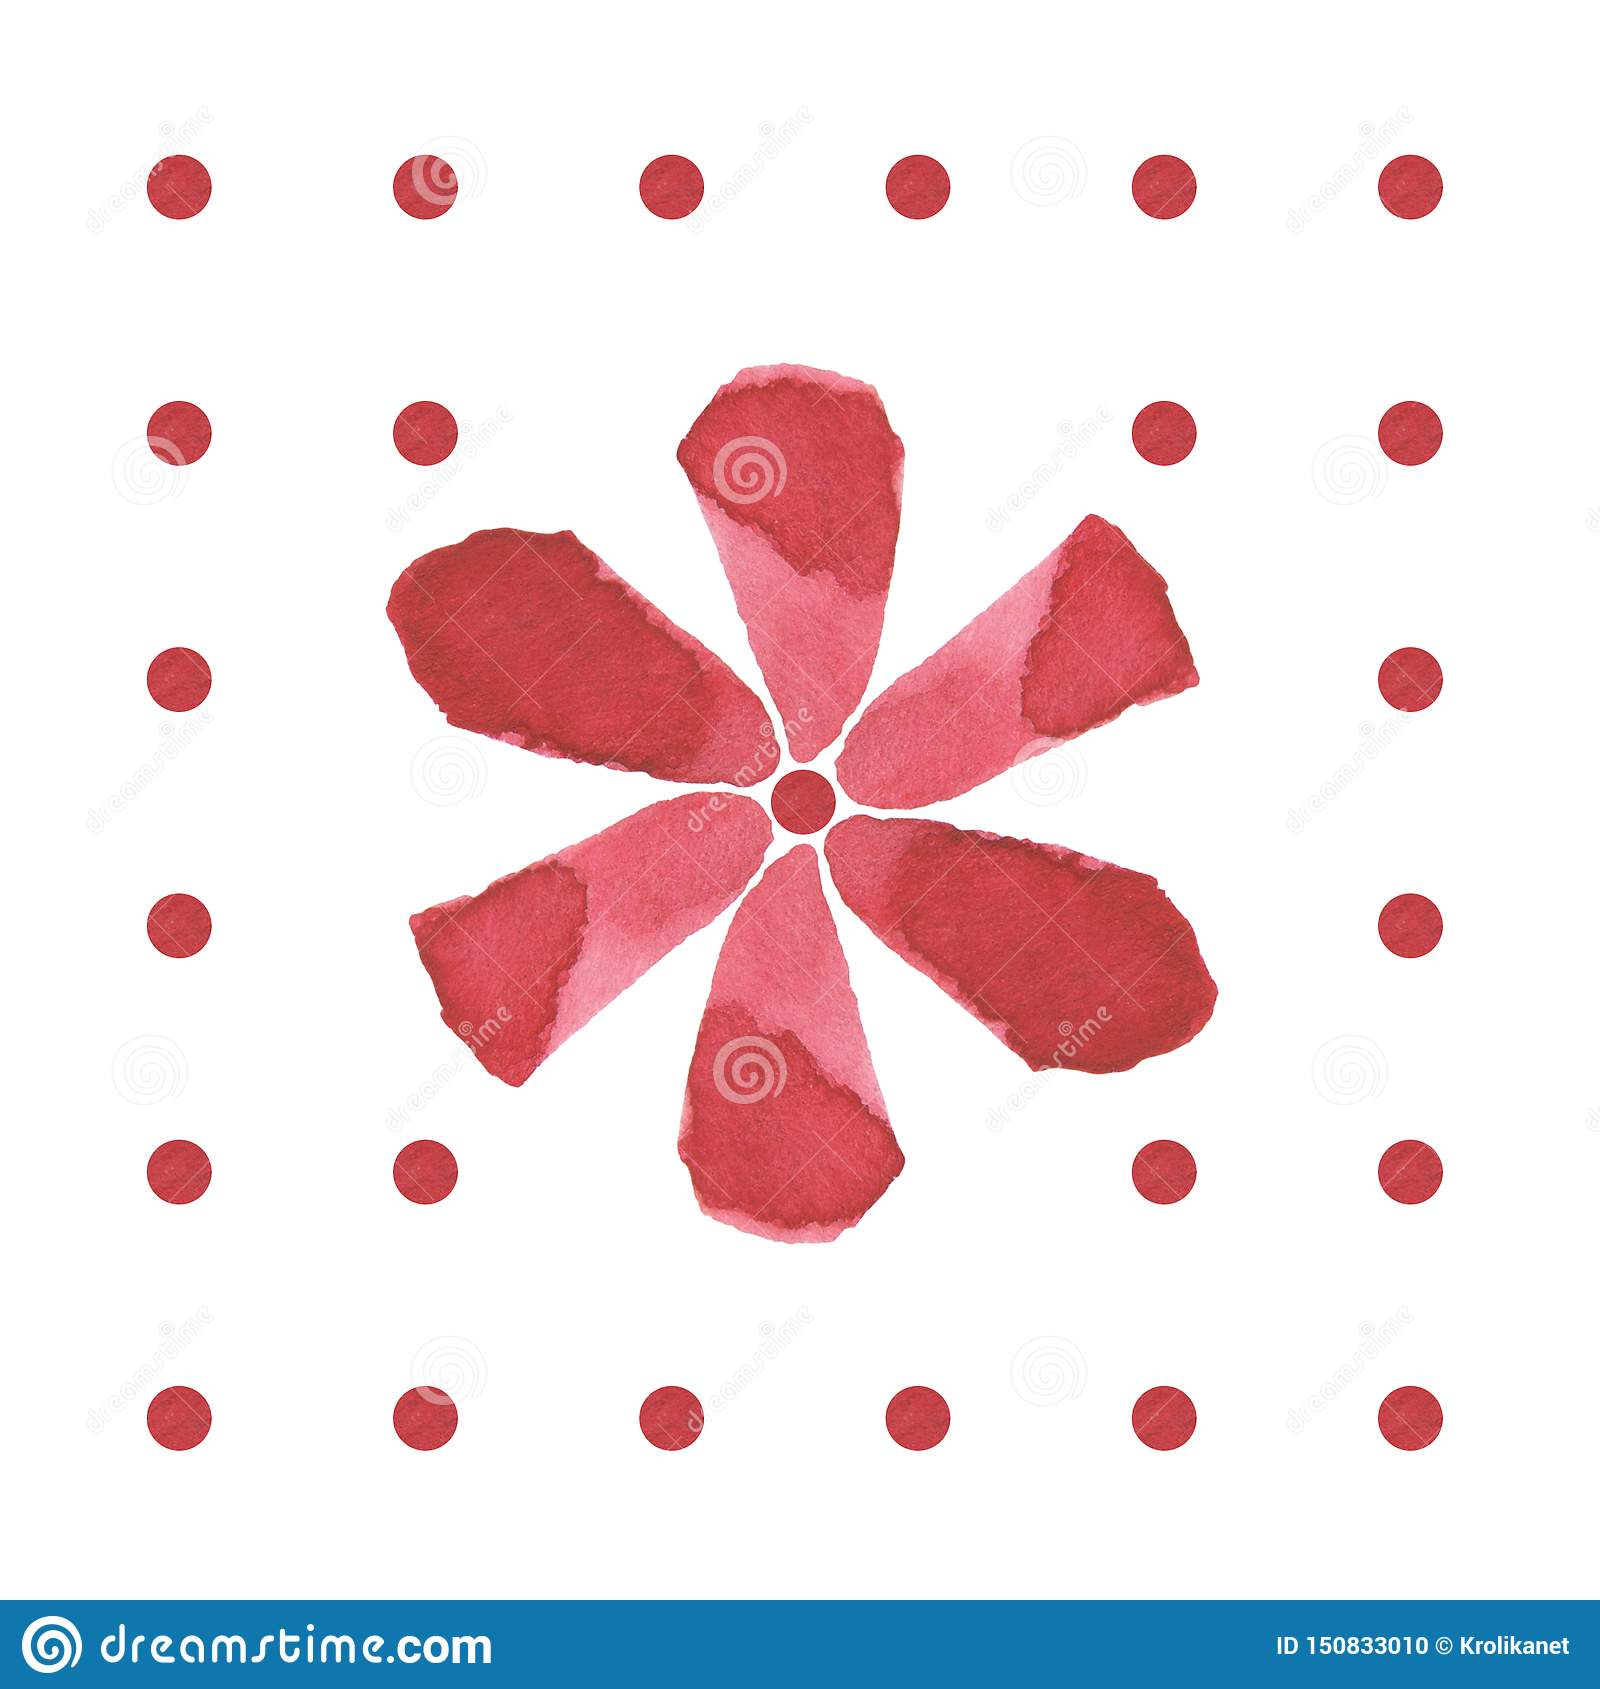 Hand drawing watercolor brush red flower pattern